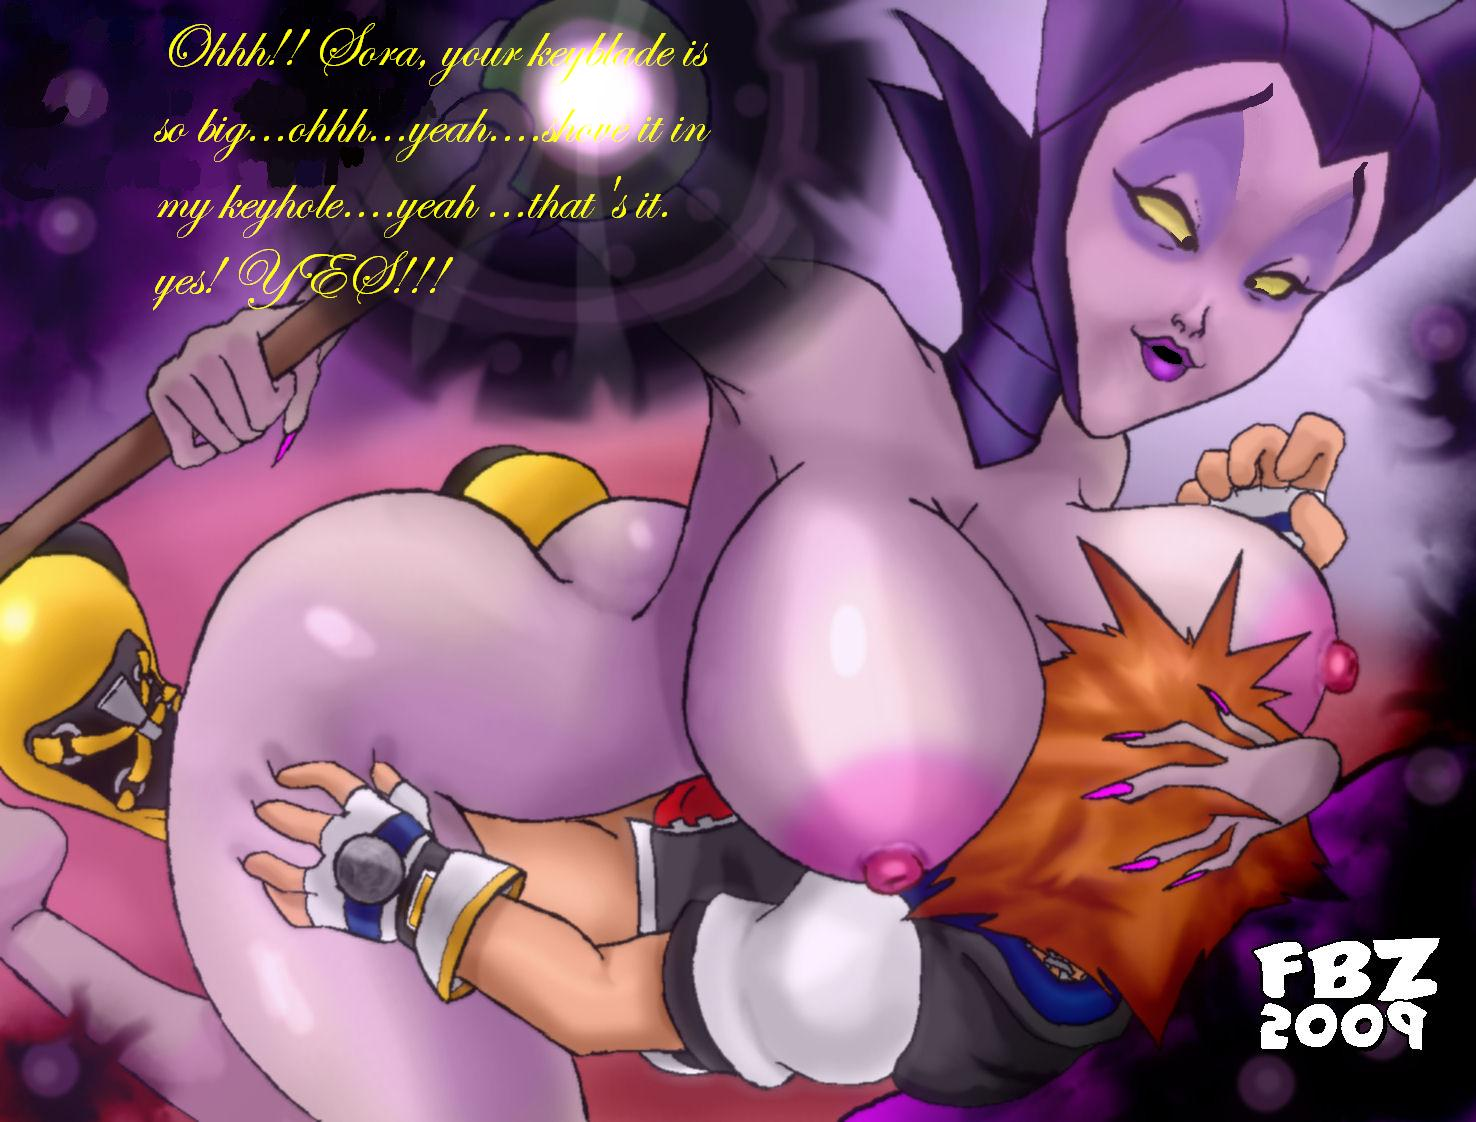 Can Kingdom hearts blowjob porn valuable